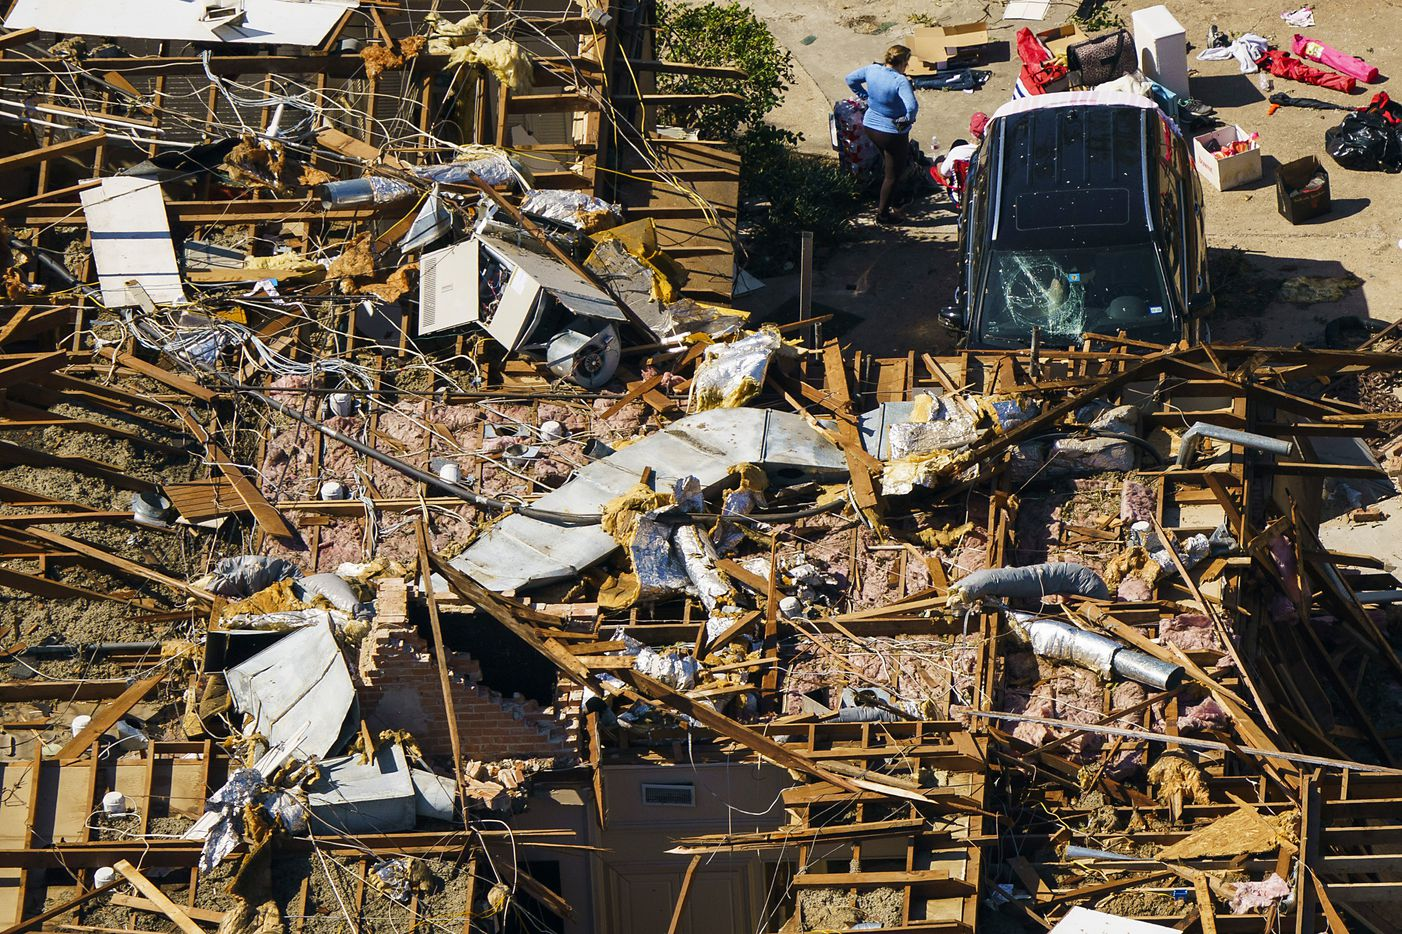 A woman stands in amidst the rubble of a damaged home near Royal Lane and North Central Expressway in an aerial view of tornado damage on Monday, Oct. 21, 2019, in Dallas.